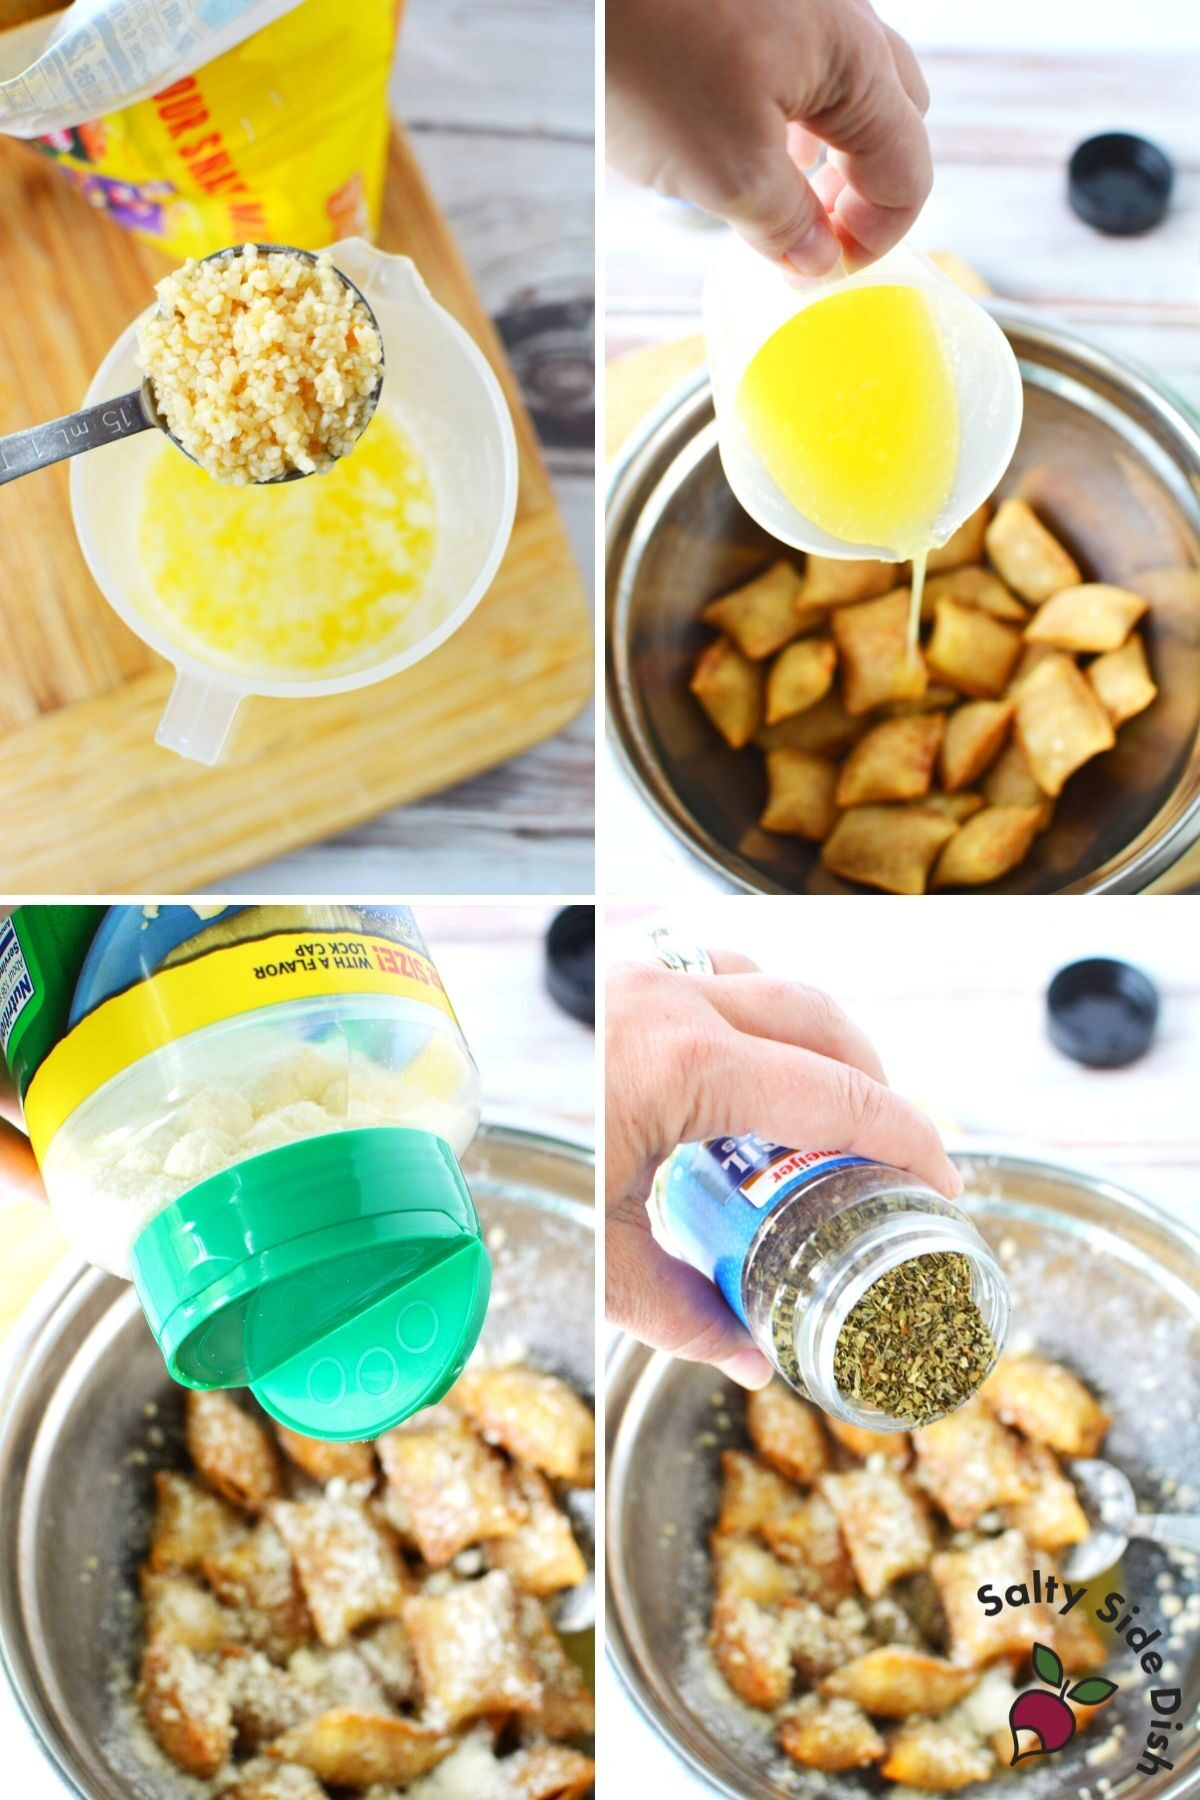 pouring spices into fried pizza rolls